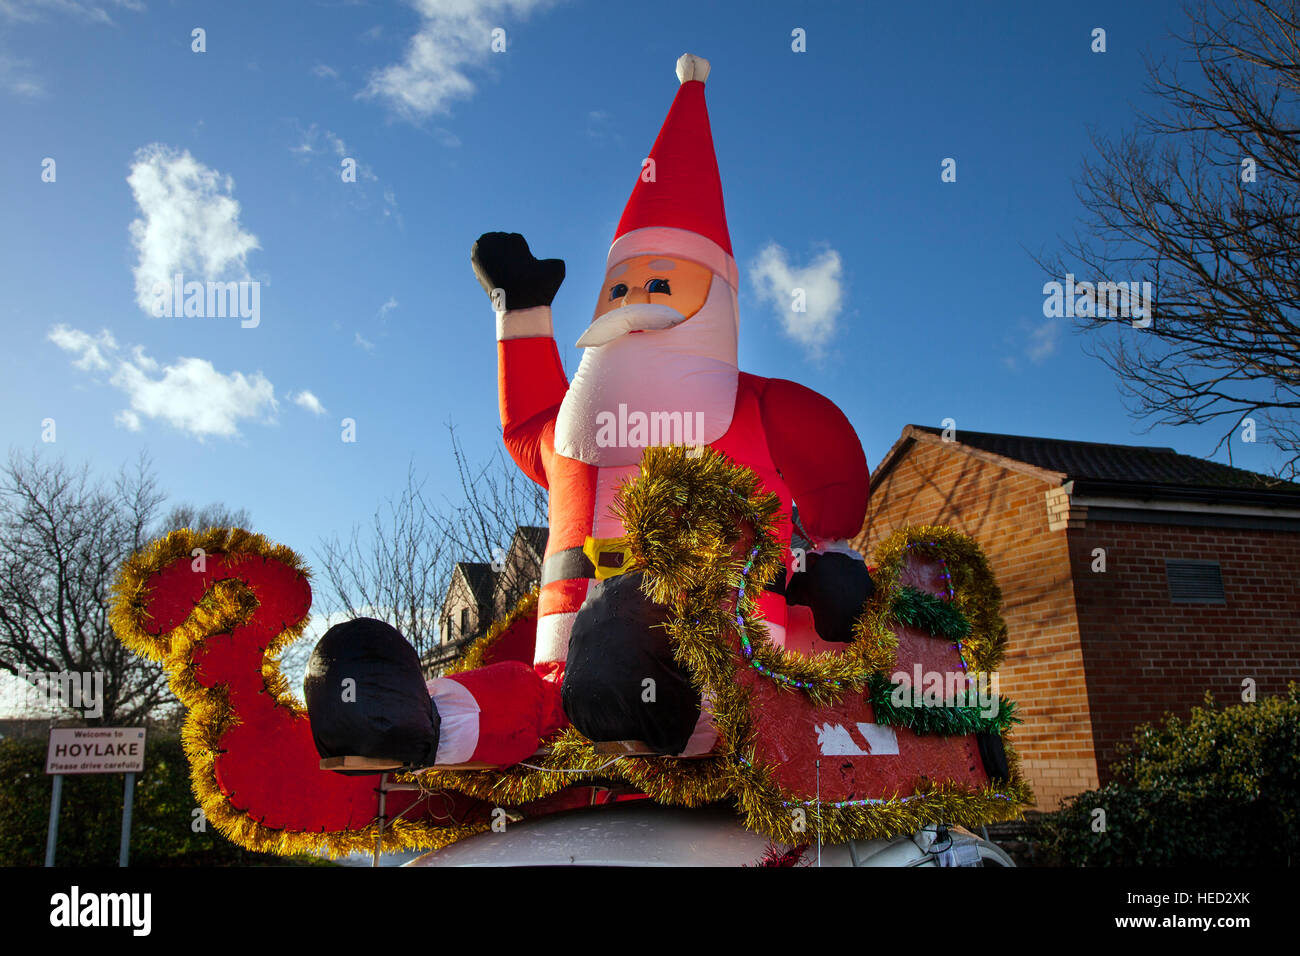 rudolph the red nosed reindeer hat stockfotos rudolph. Black Bedroom Furniture Sets. Home Design Ideas